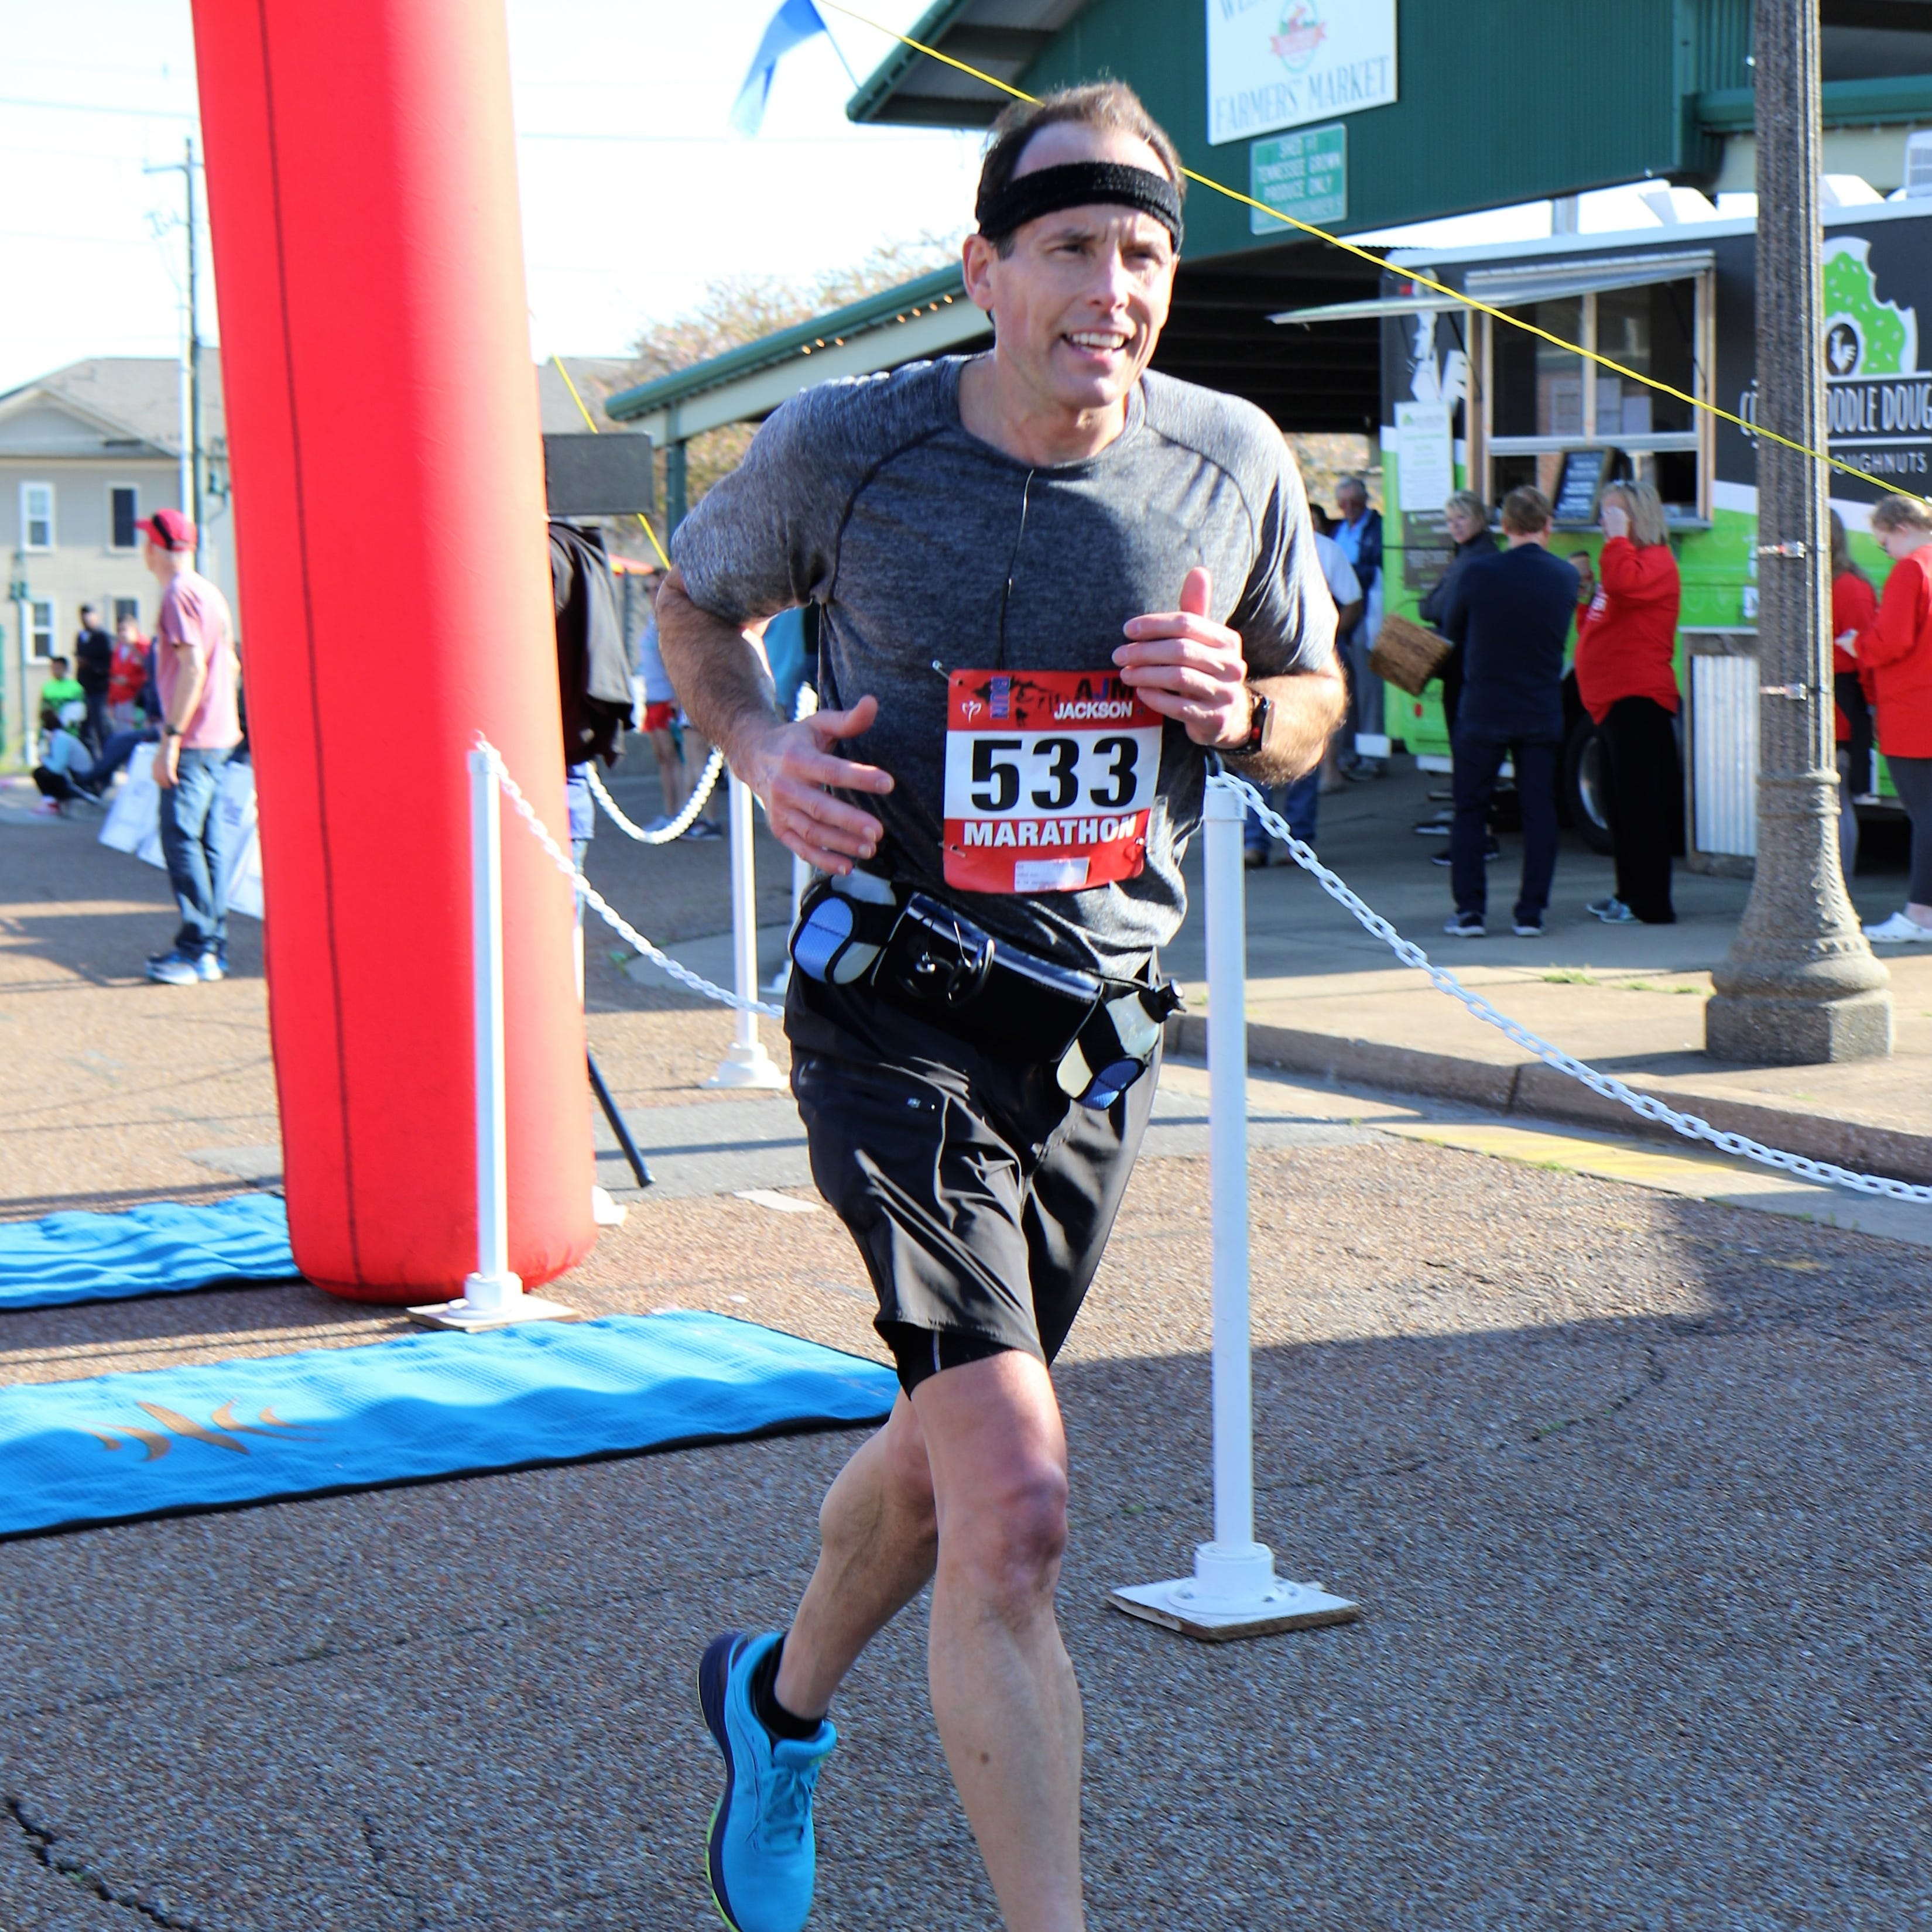 320 people run Andrew Jackson full, half-marathon